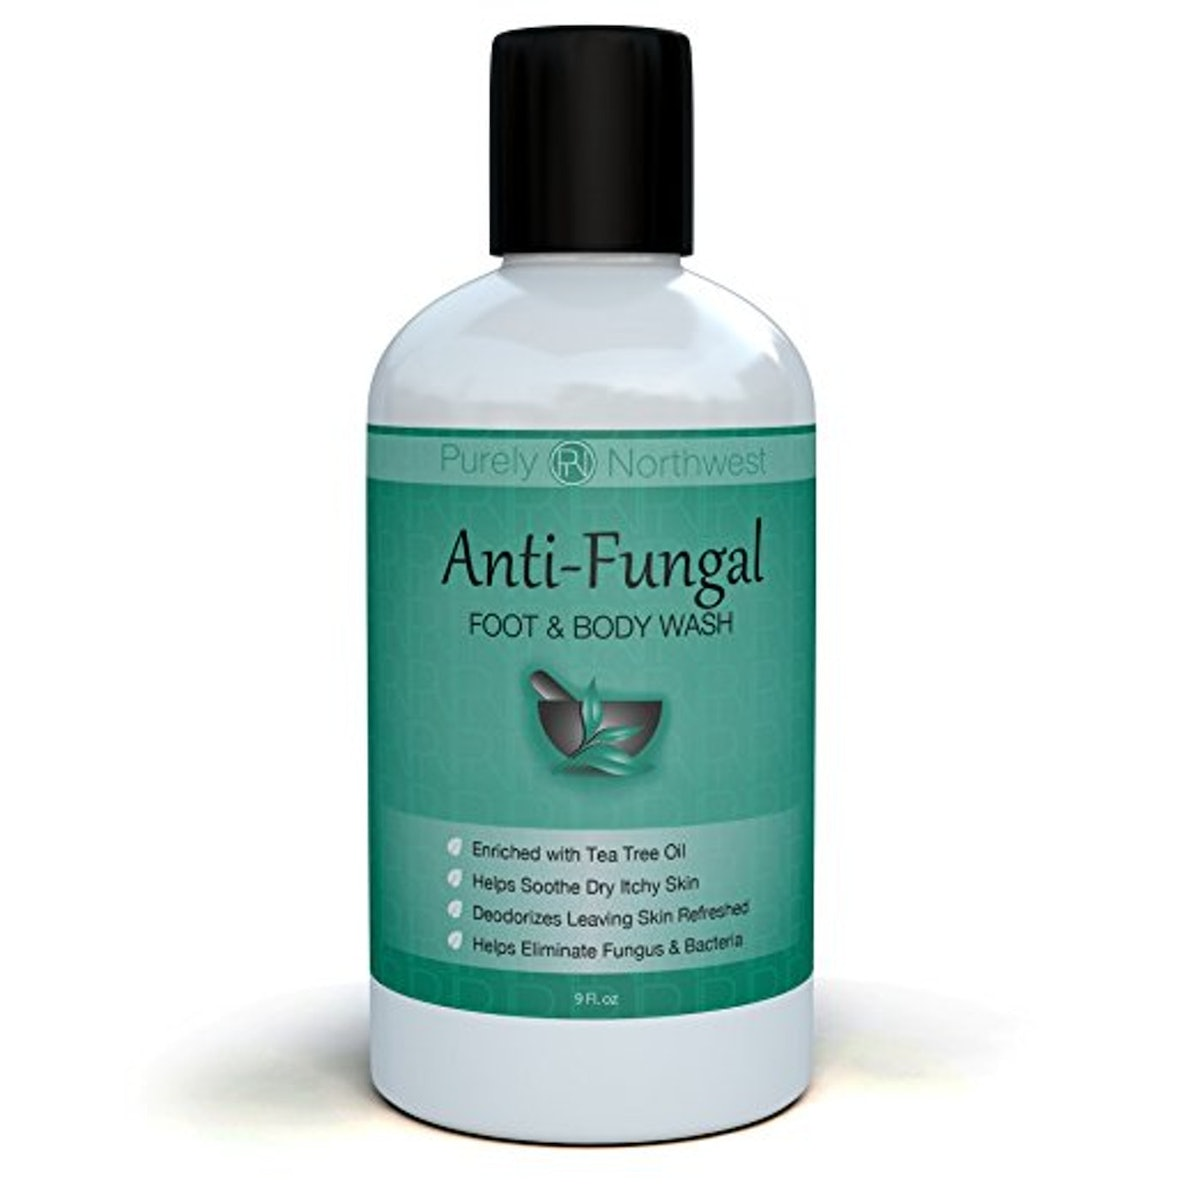 Anti-Fungal Foot and Body Wash